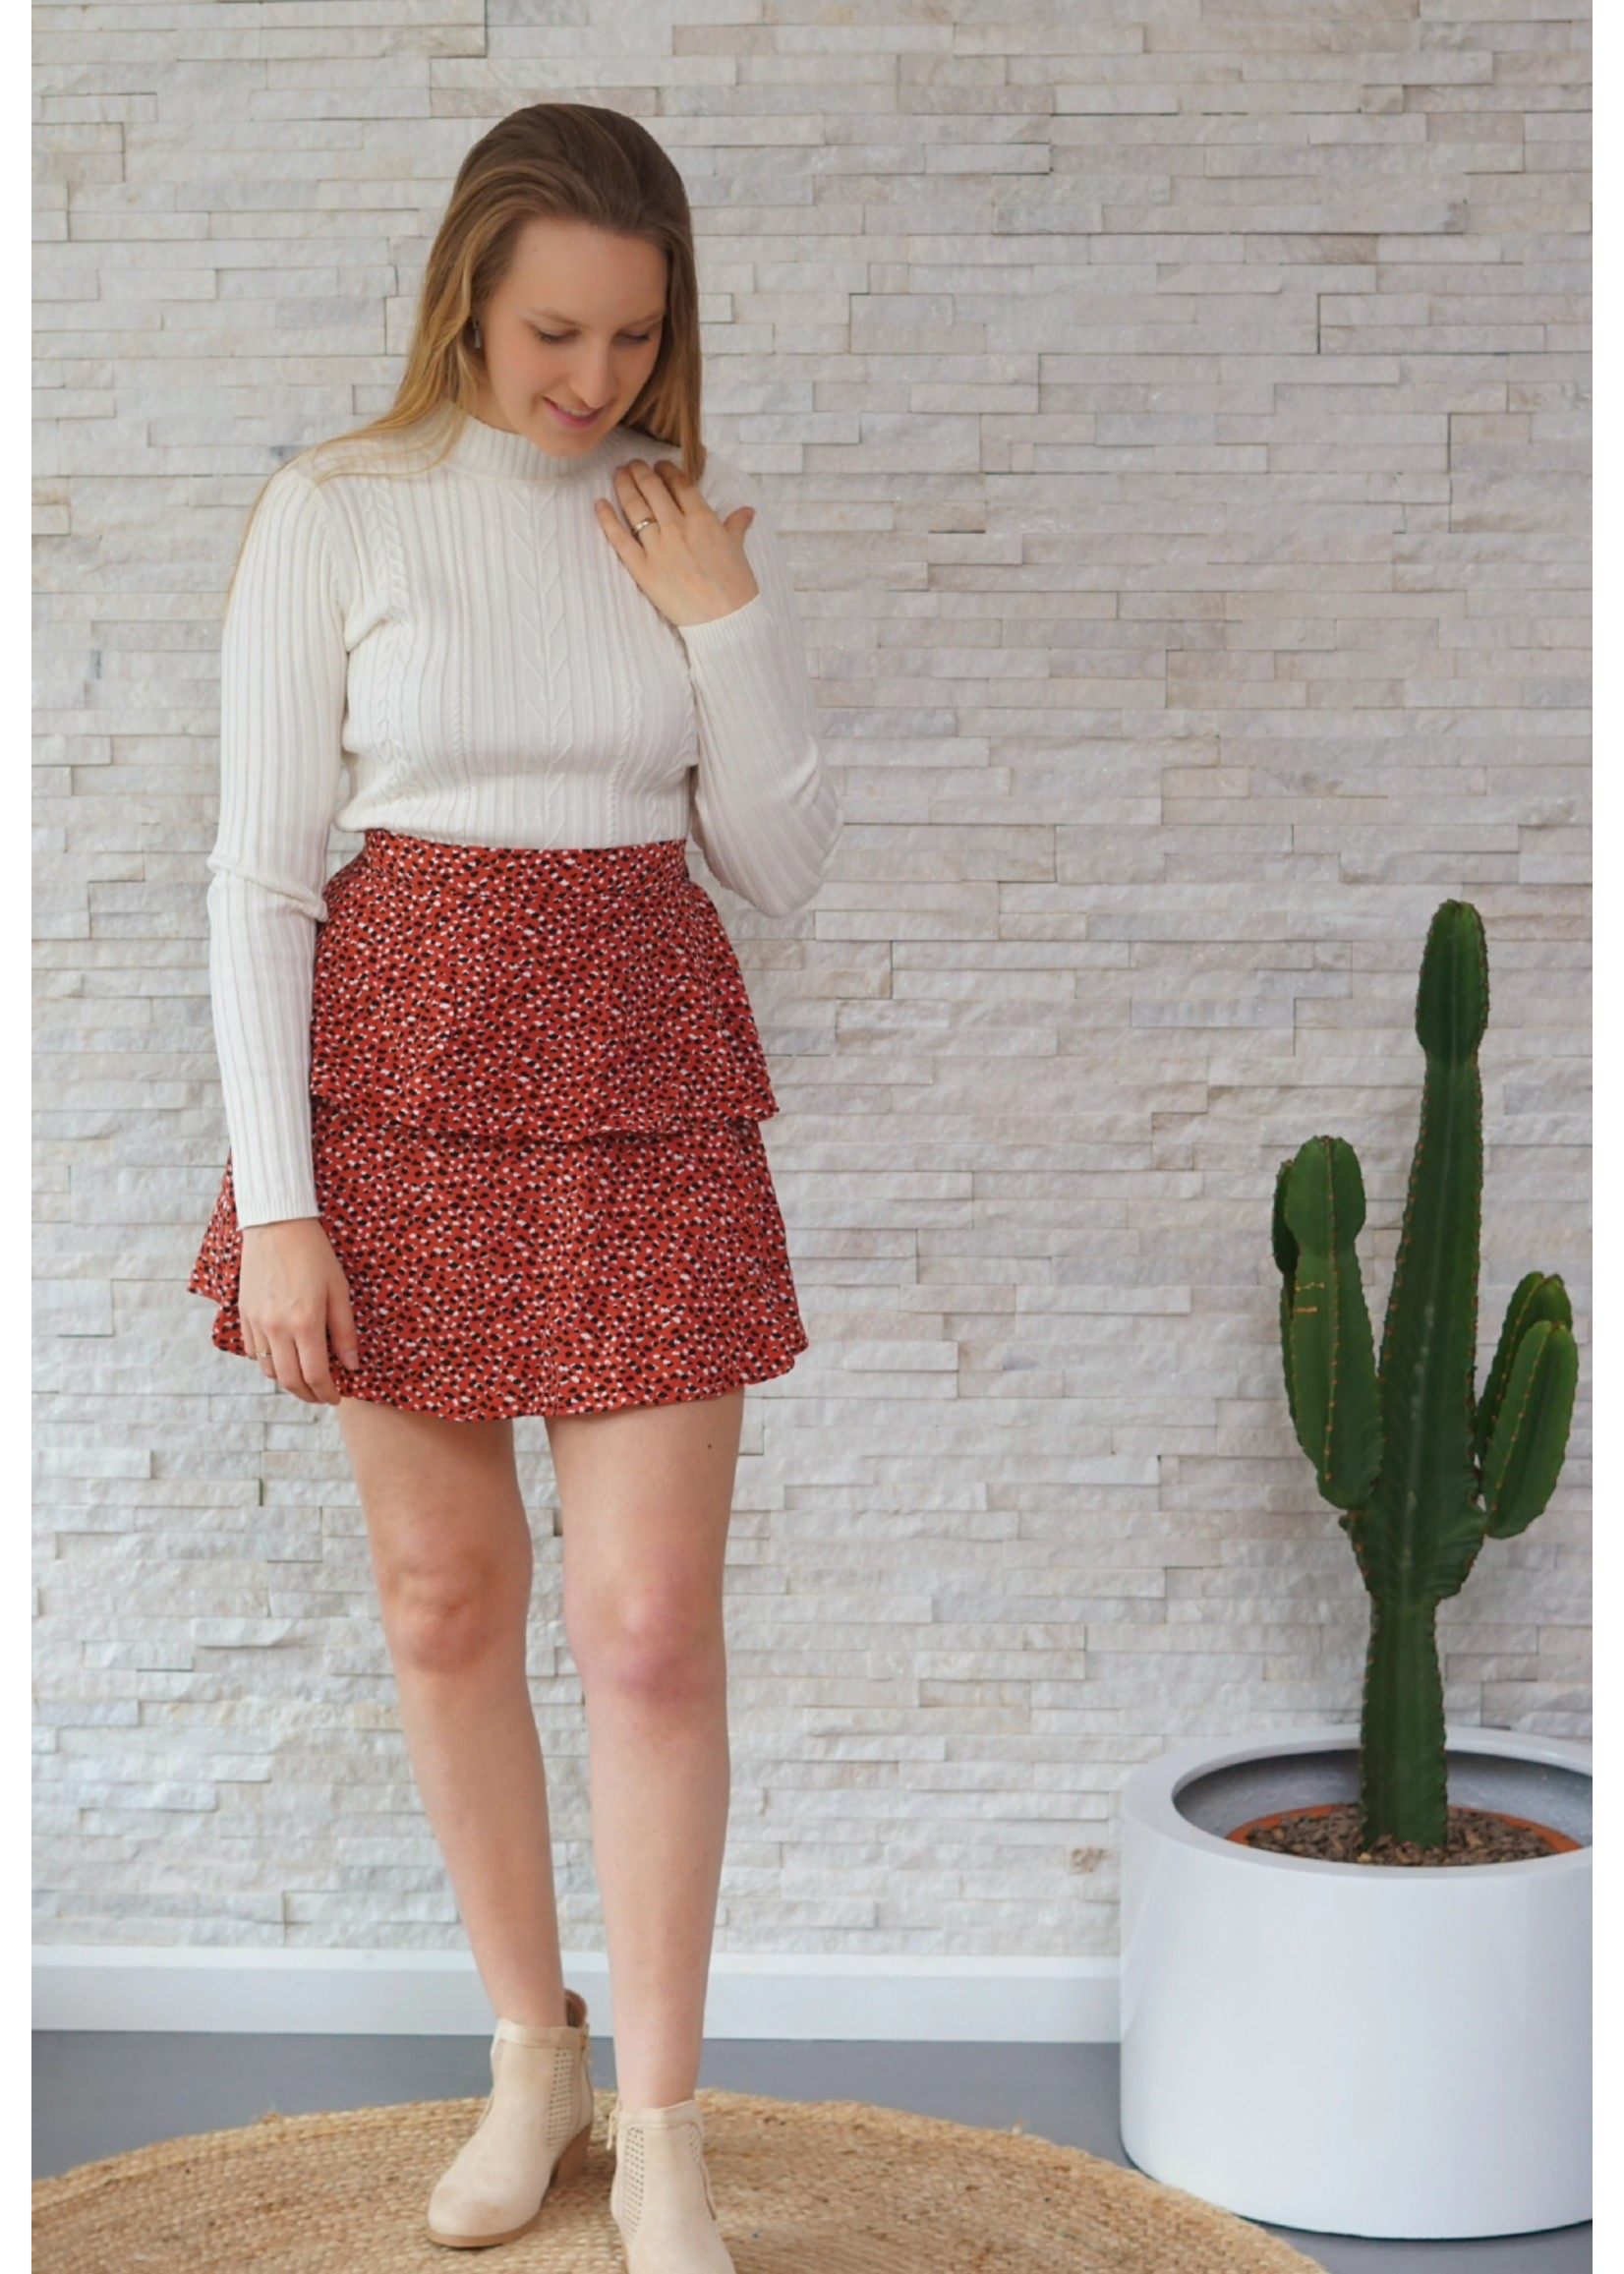 Lofty Manner Skirt pink black